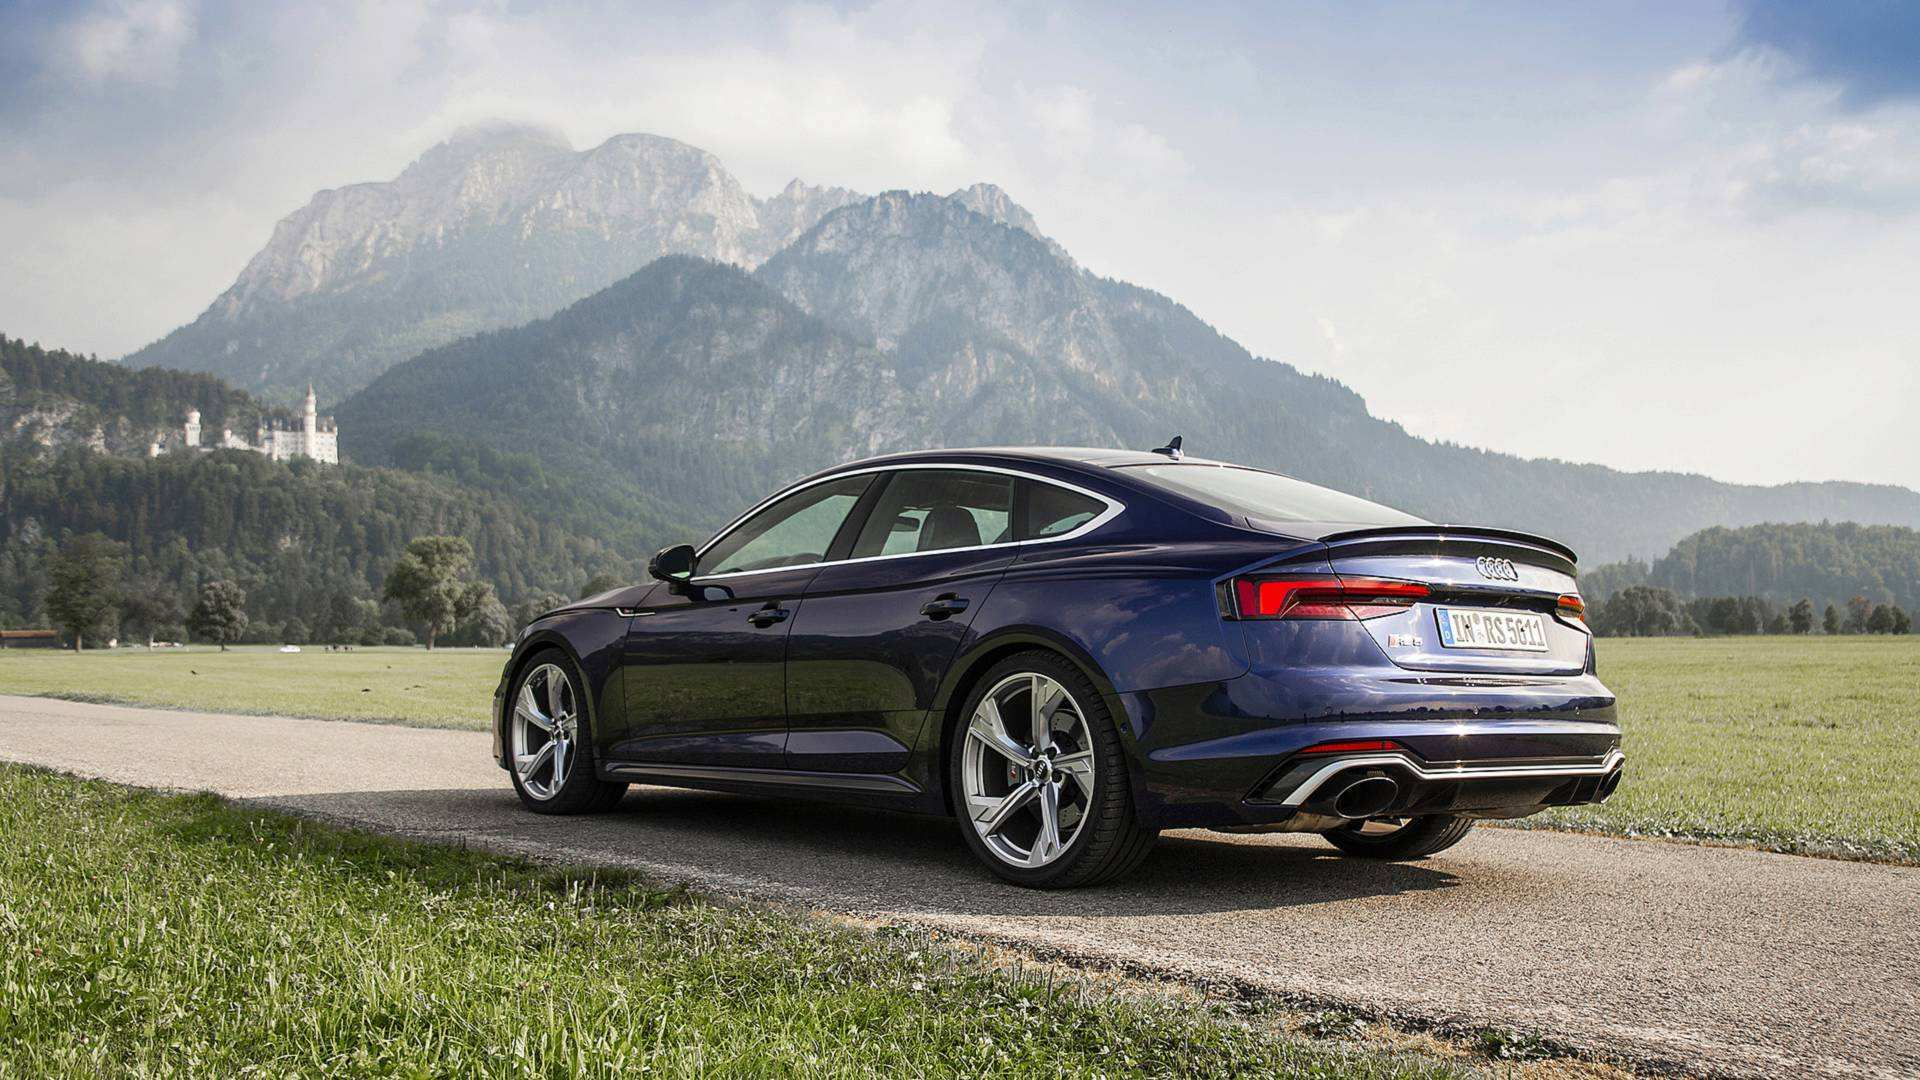 33 New 2019 Audi Rs5 Release Date Usa Exterior And Interior